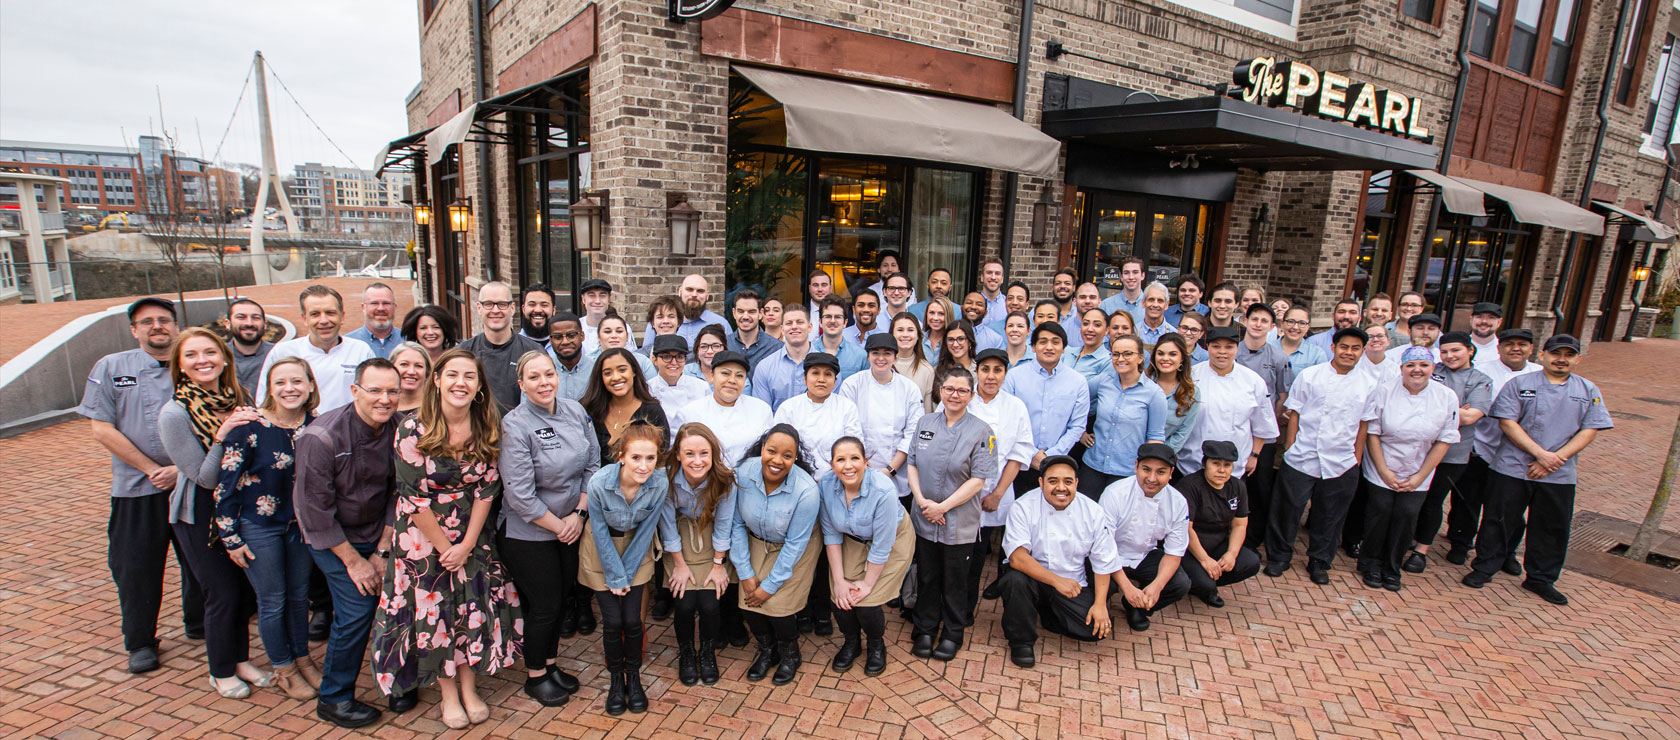 Staff posing outside The Pearl Dublin's exterior